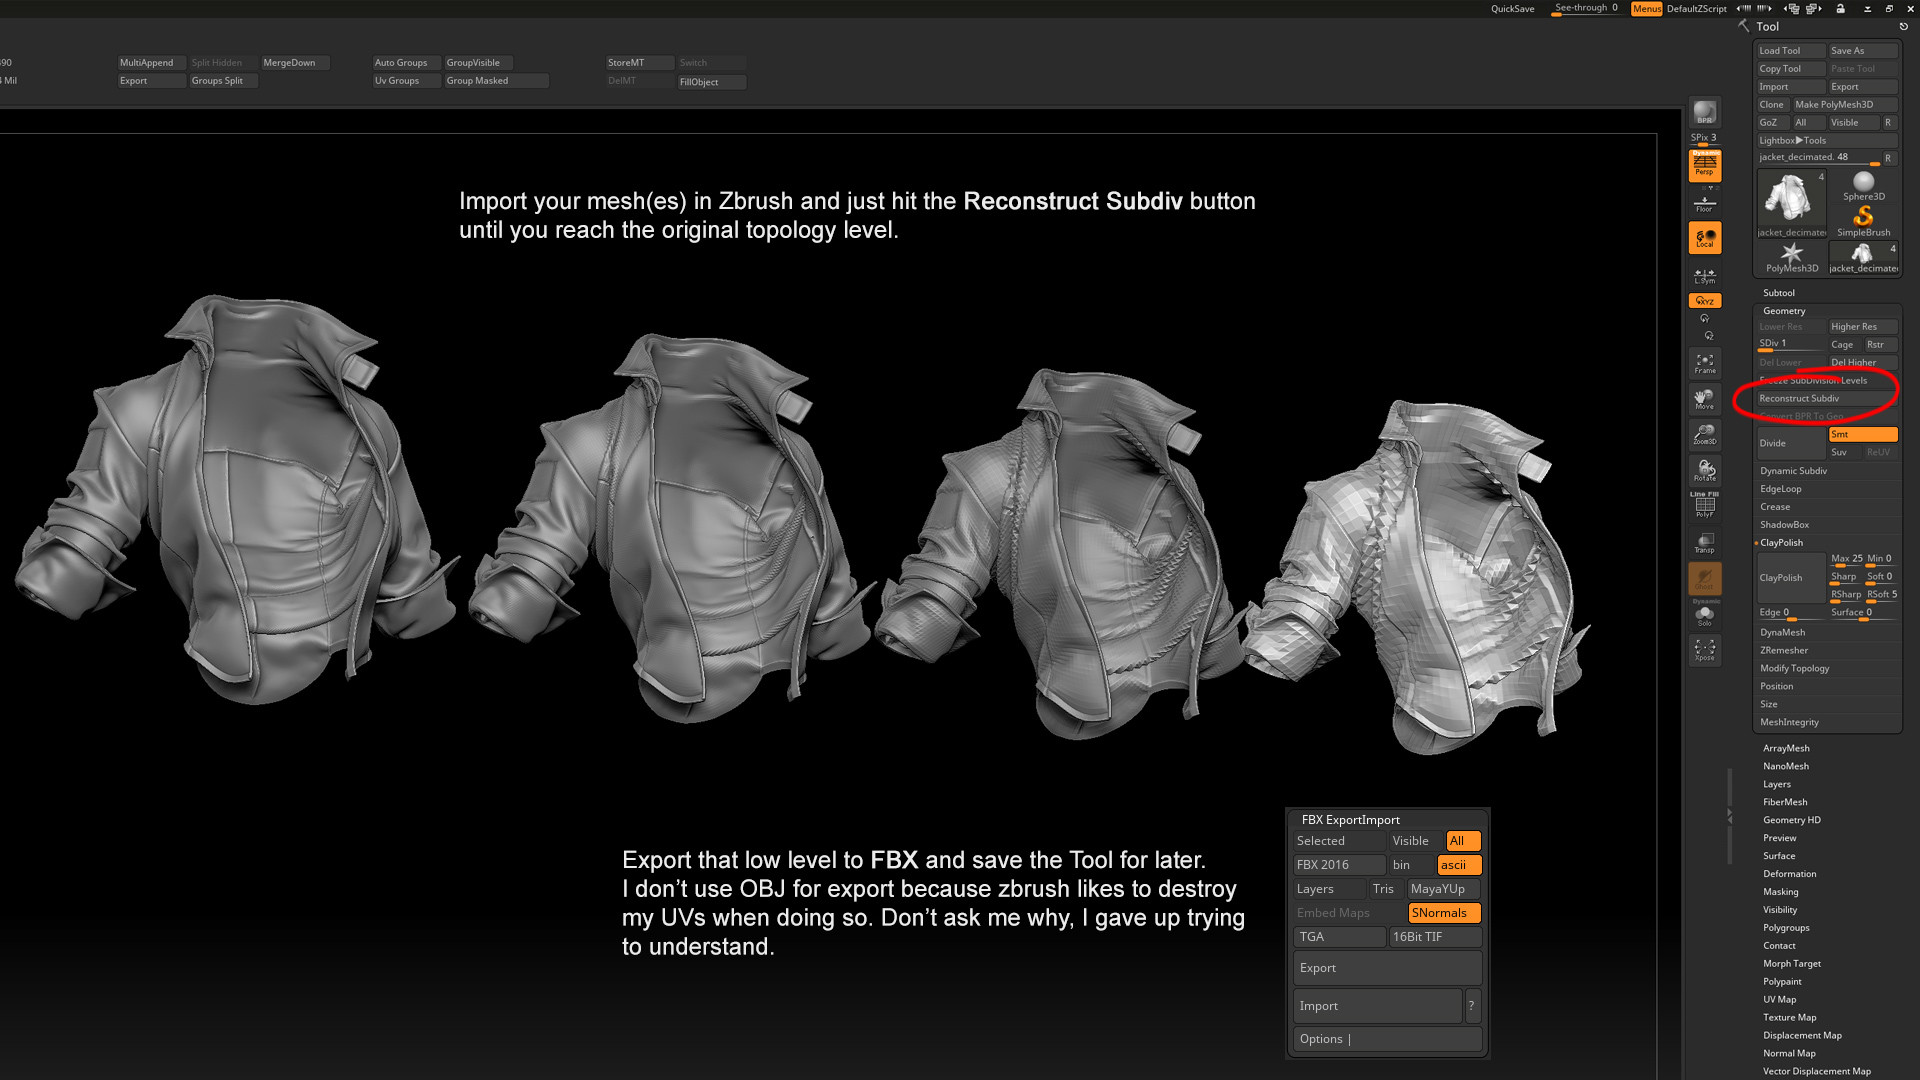 ArtStation - How to export from Marvelous Designer (like a